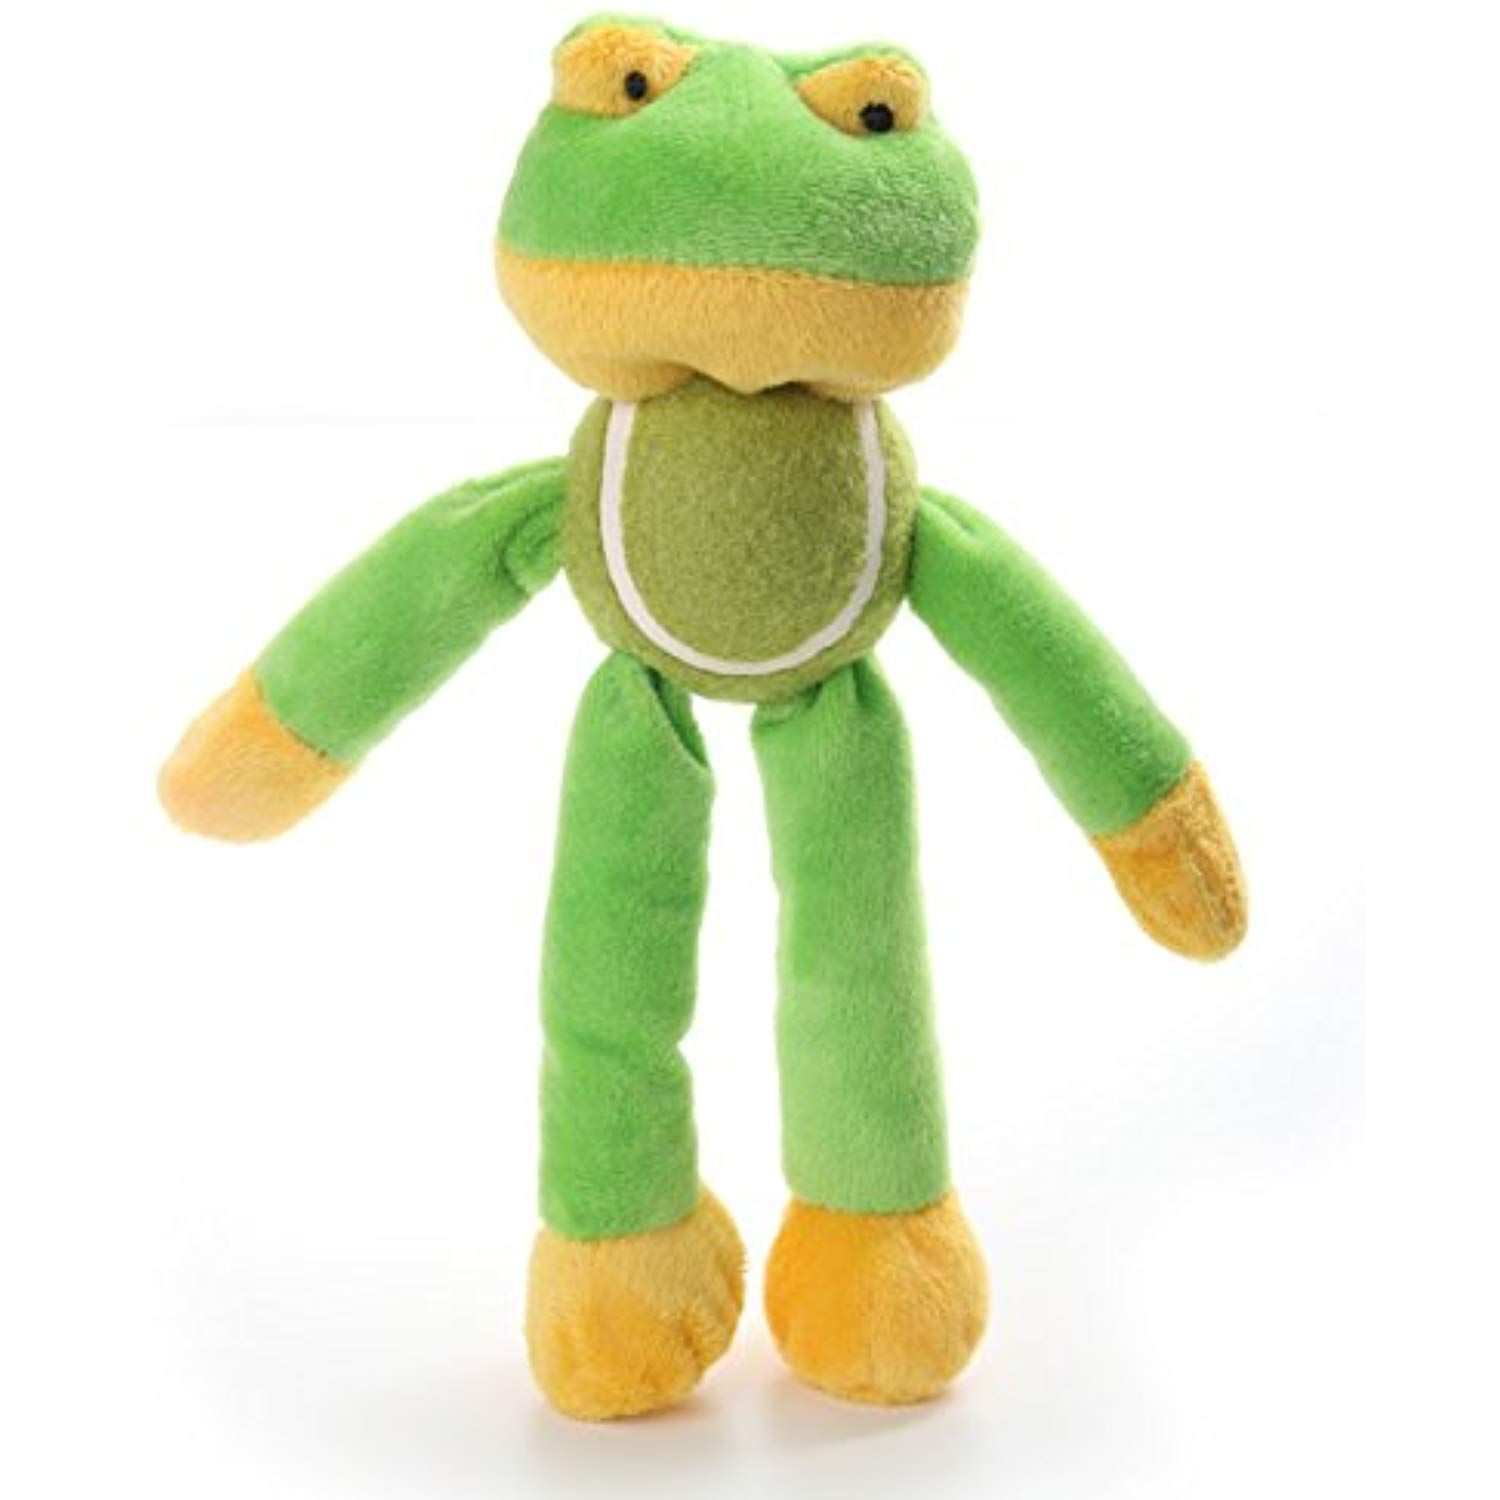 Dogloveit cutie frog plush toy with tennis ball chew squeaky toy for